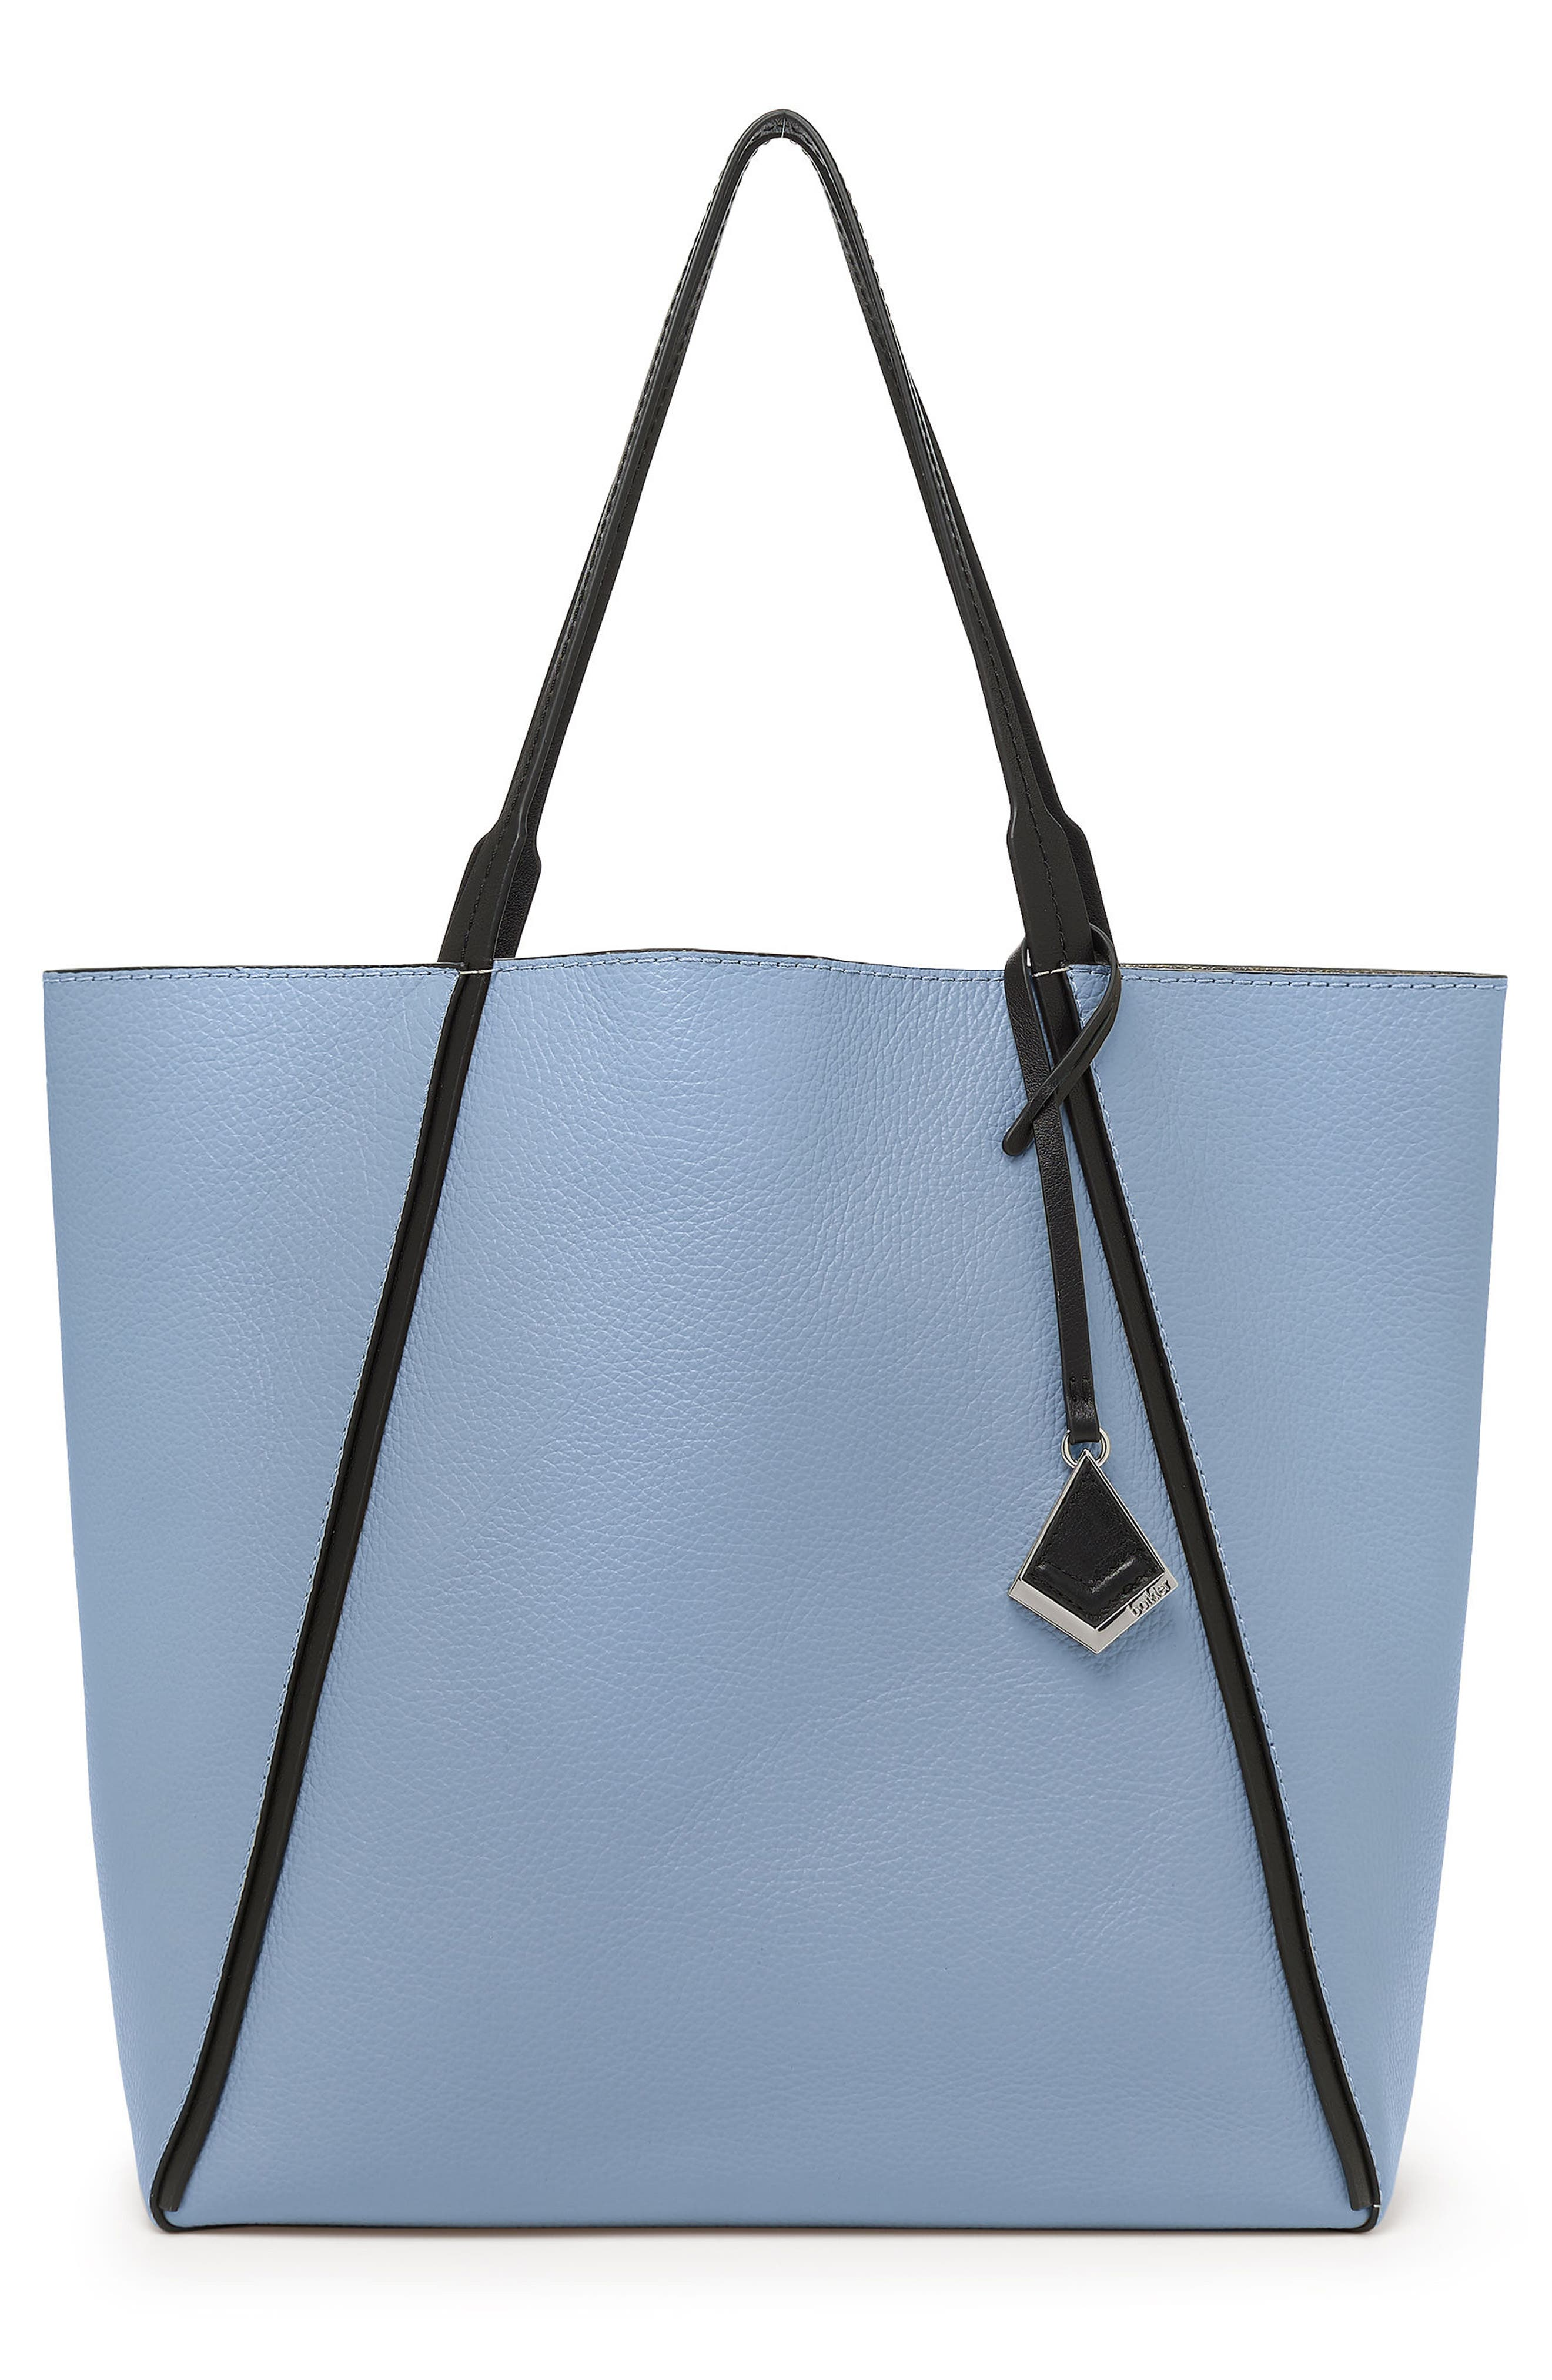 TRINITY CALFSKIN LEATHER TOTE - BLUE